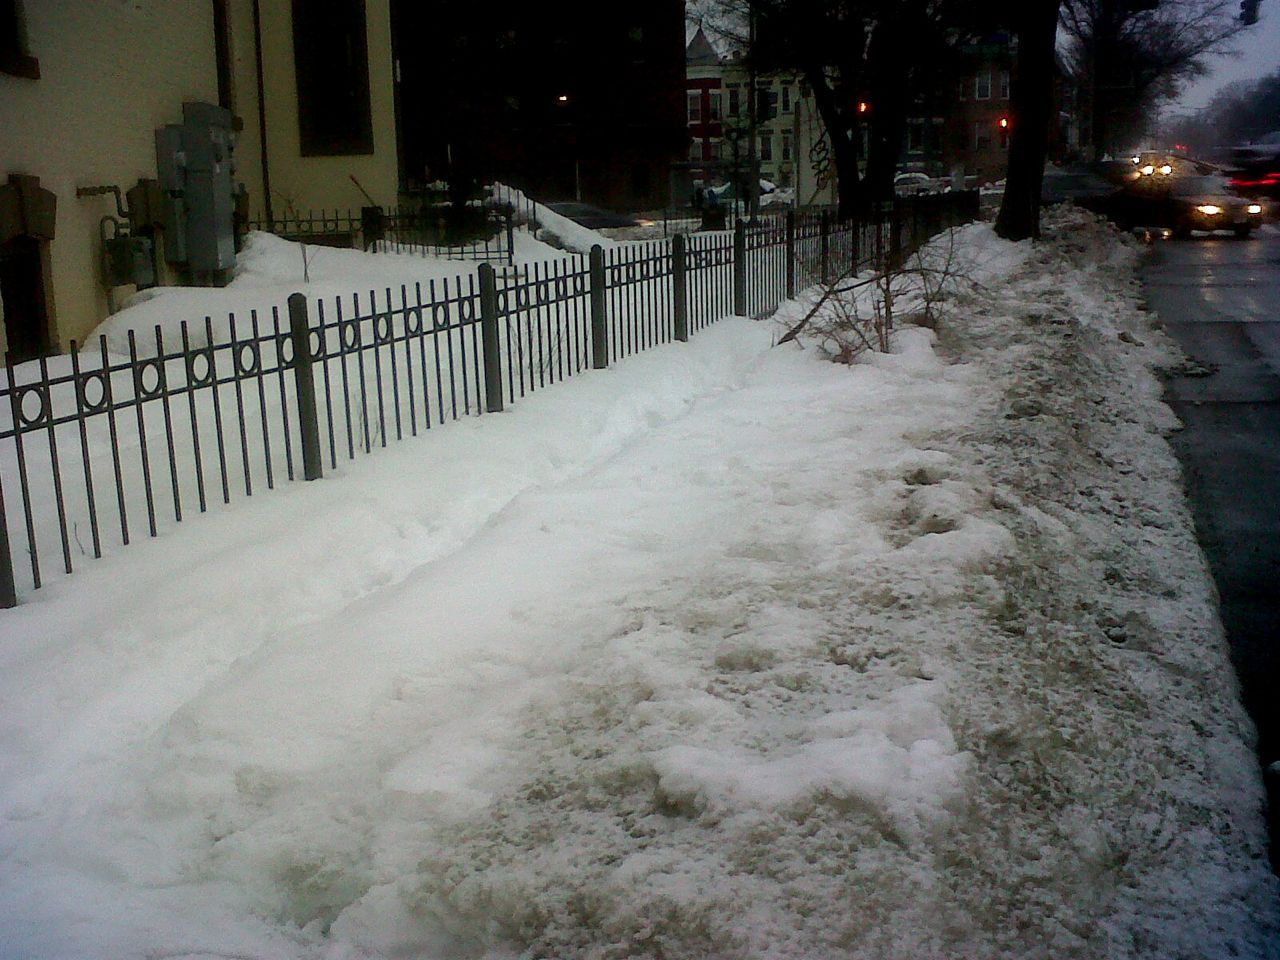 Bus stop for 80 route at North Capitol and Rhode Island, still unshoveled and unsafe for pedestrians. Photo by Allison Bishins.